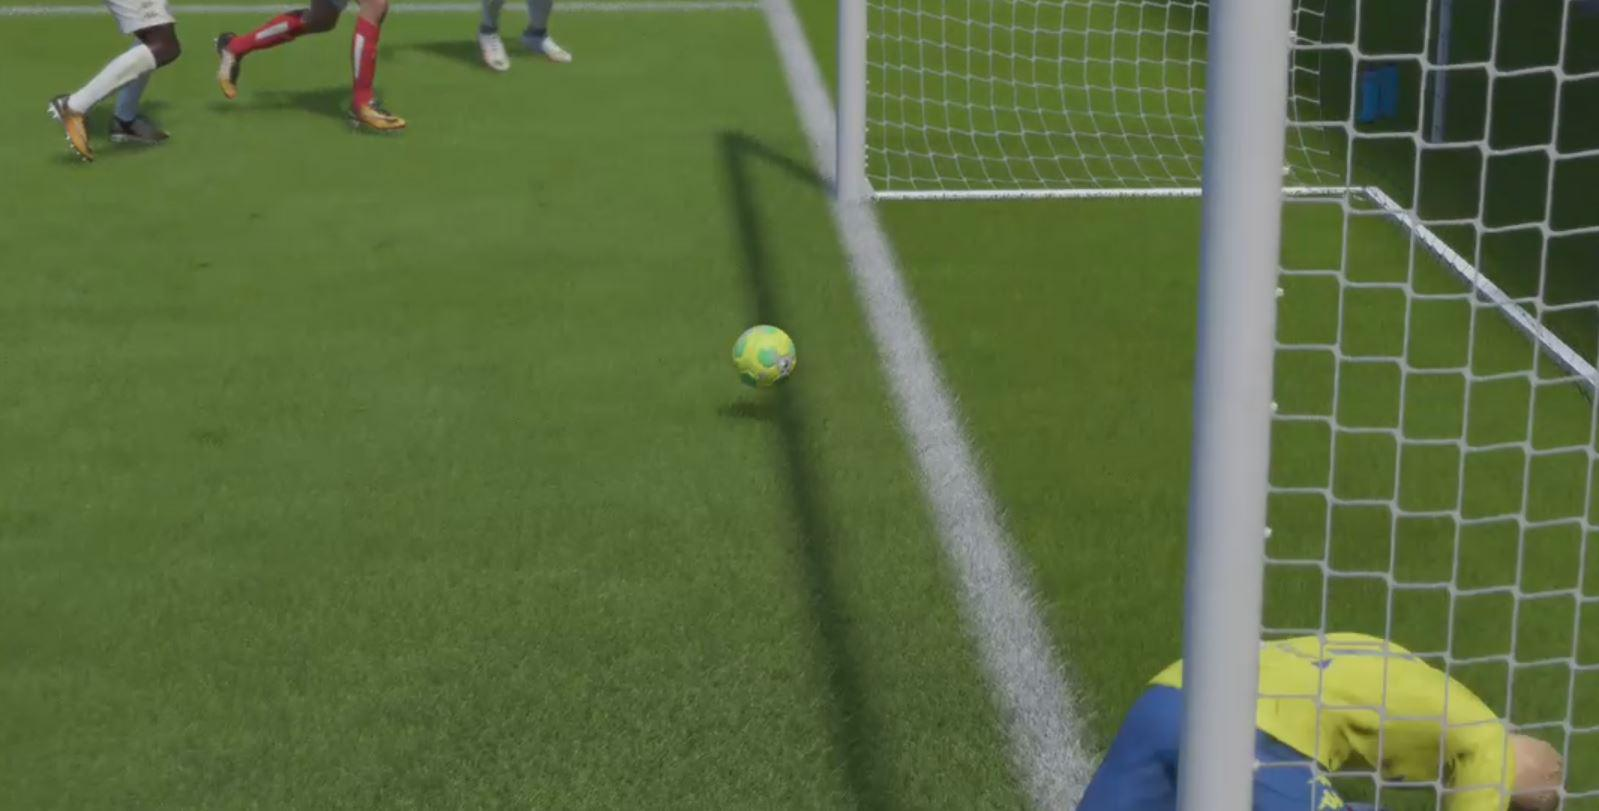 It then rebounds off an invisible wall and sits out of the goal mouth